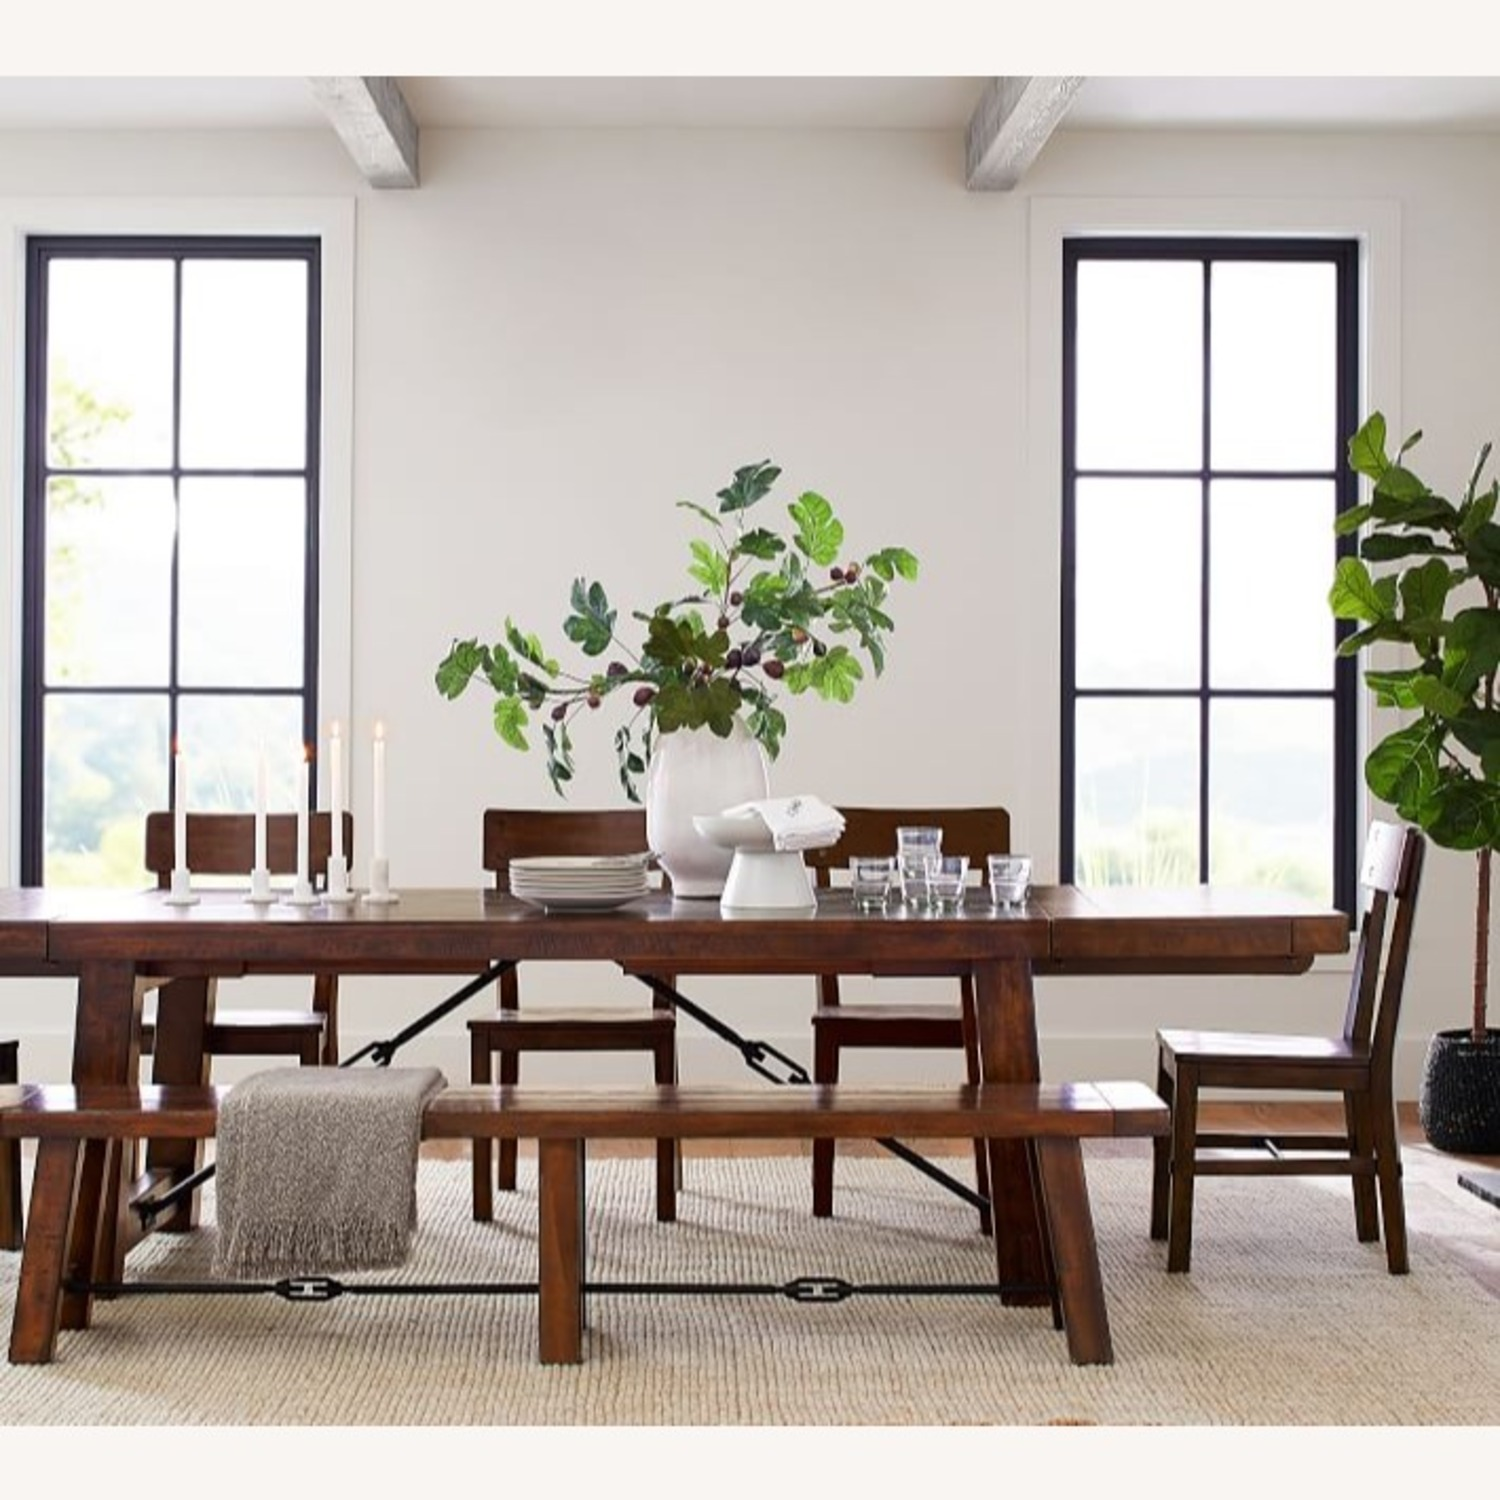 Pottery Barn Distressed Wood Rustic Table and Benches - image-3